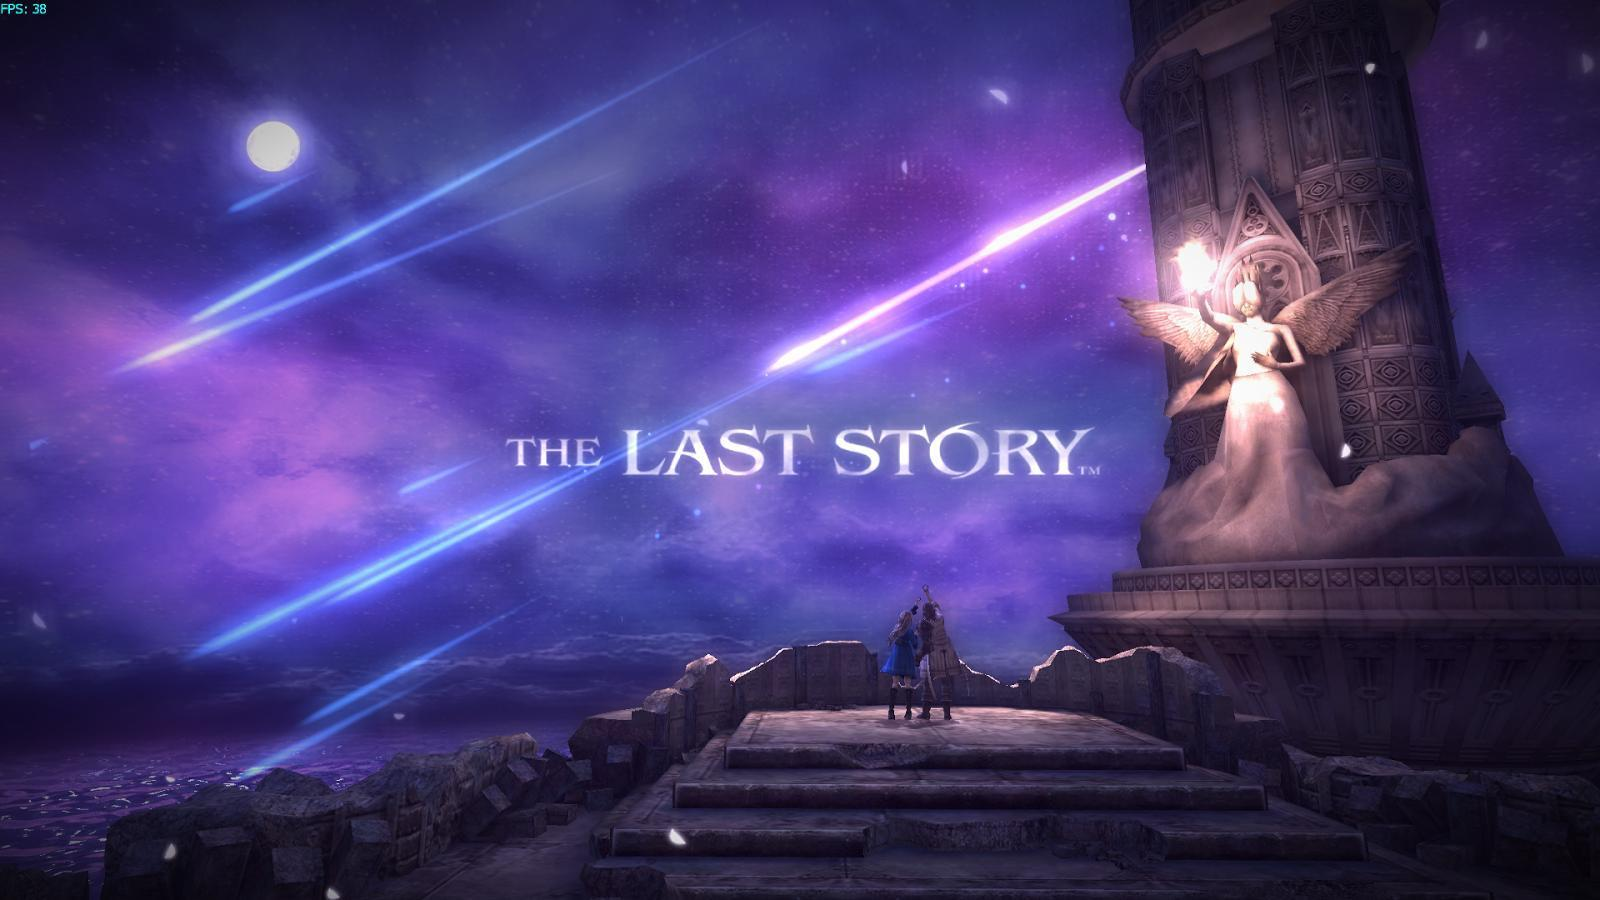 The last story wallpapers wallpaper cave - The last story hd ...